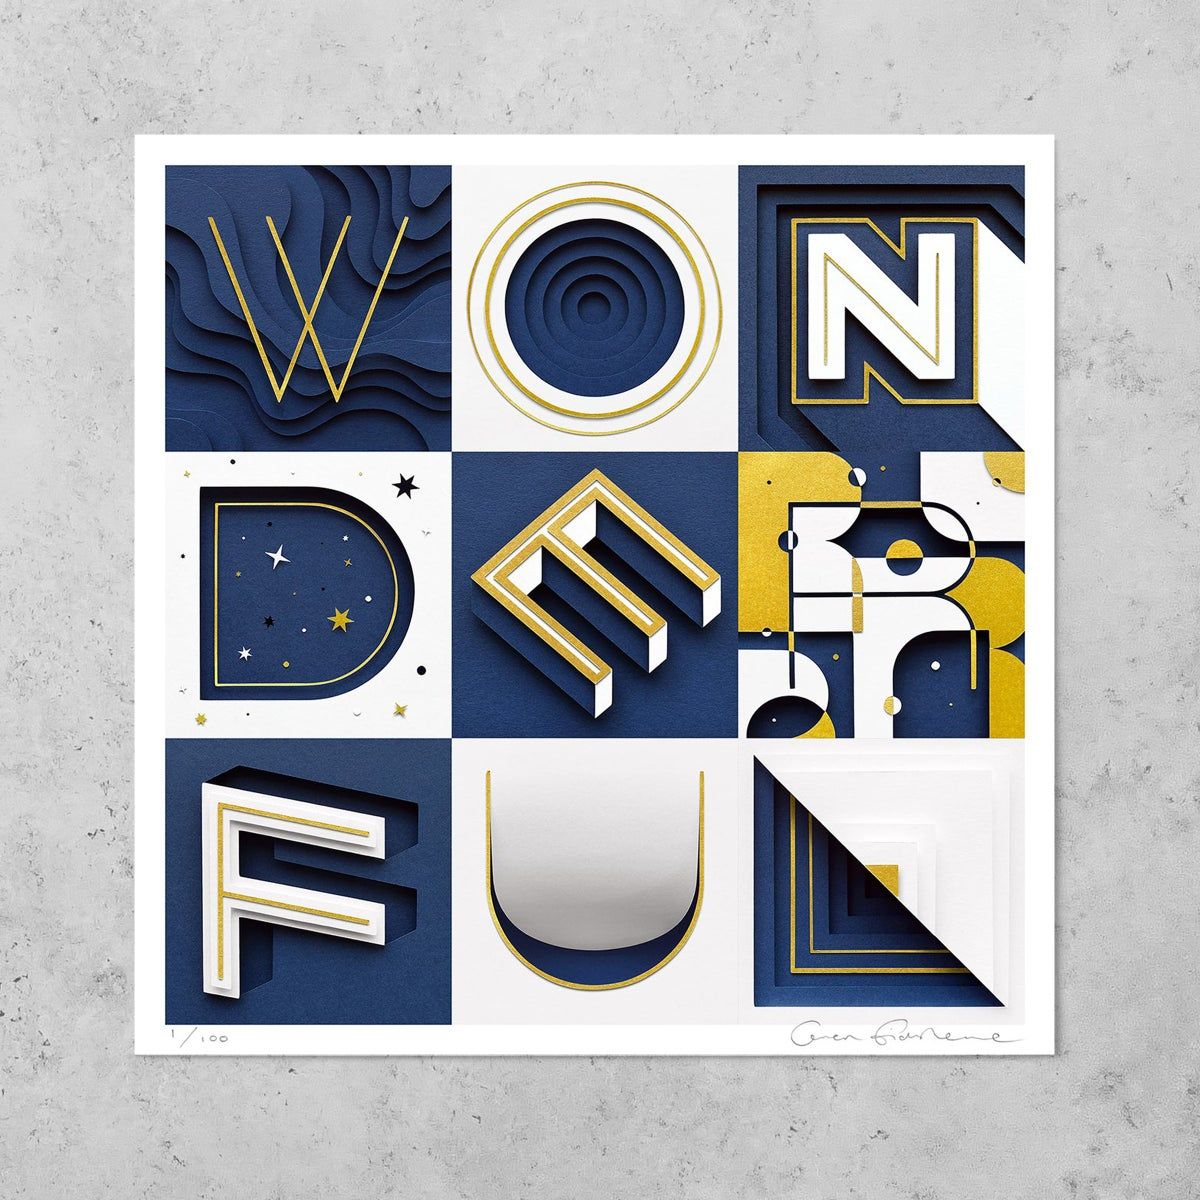 Image of Wonderful – Limited Edition Gold Foiled Print